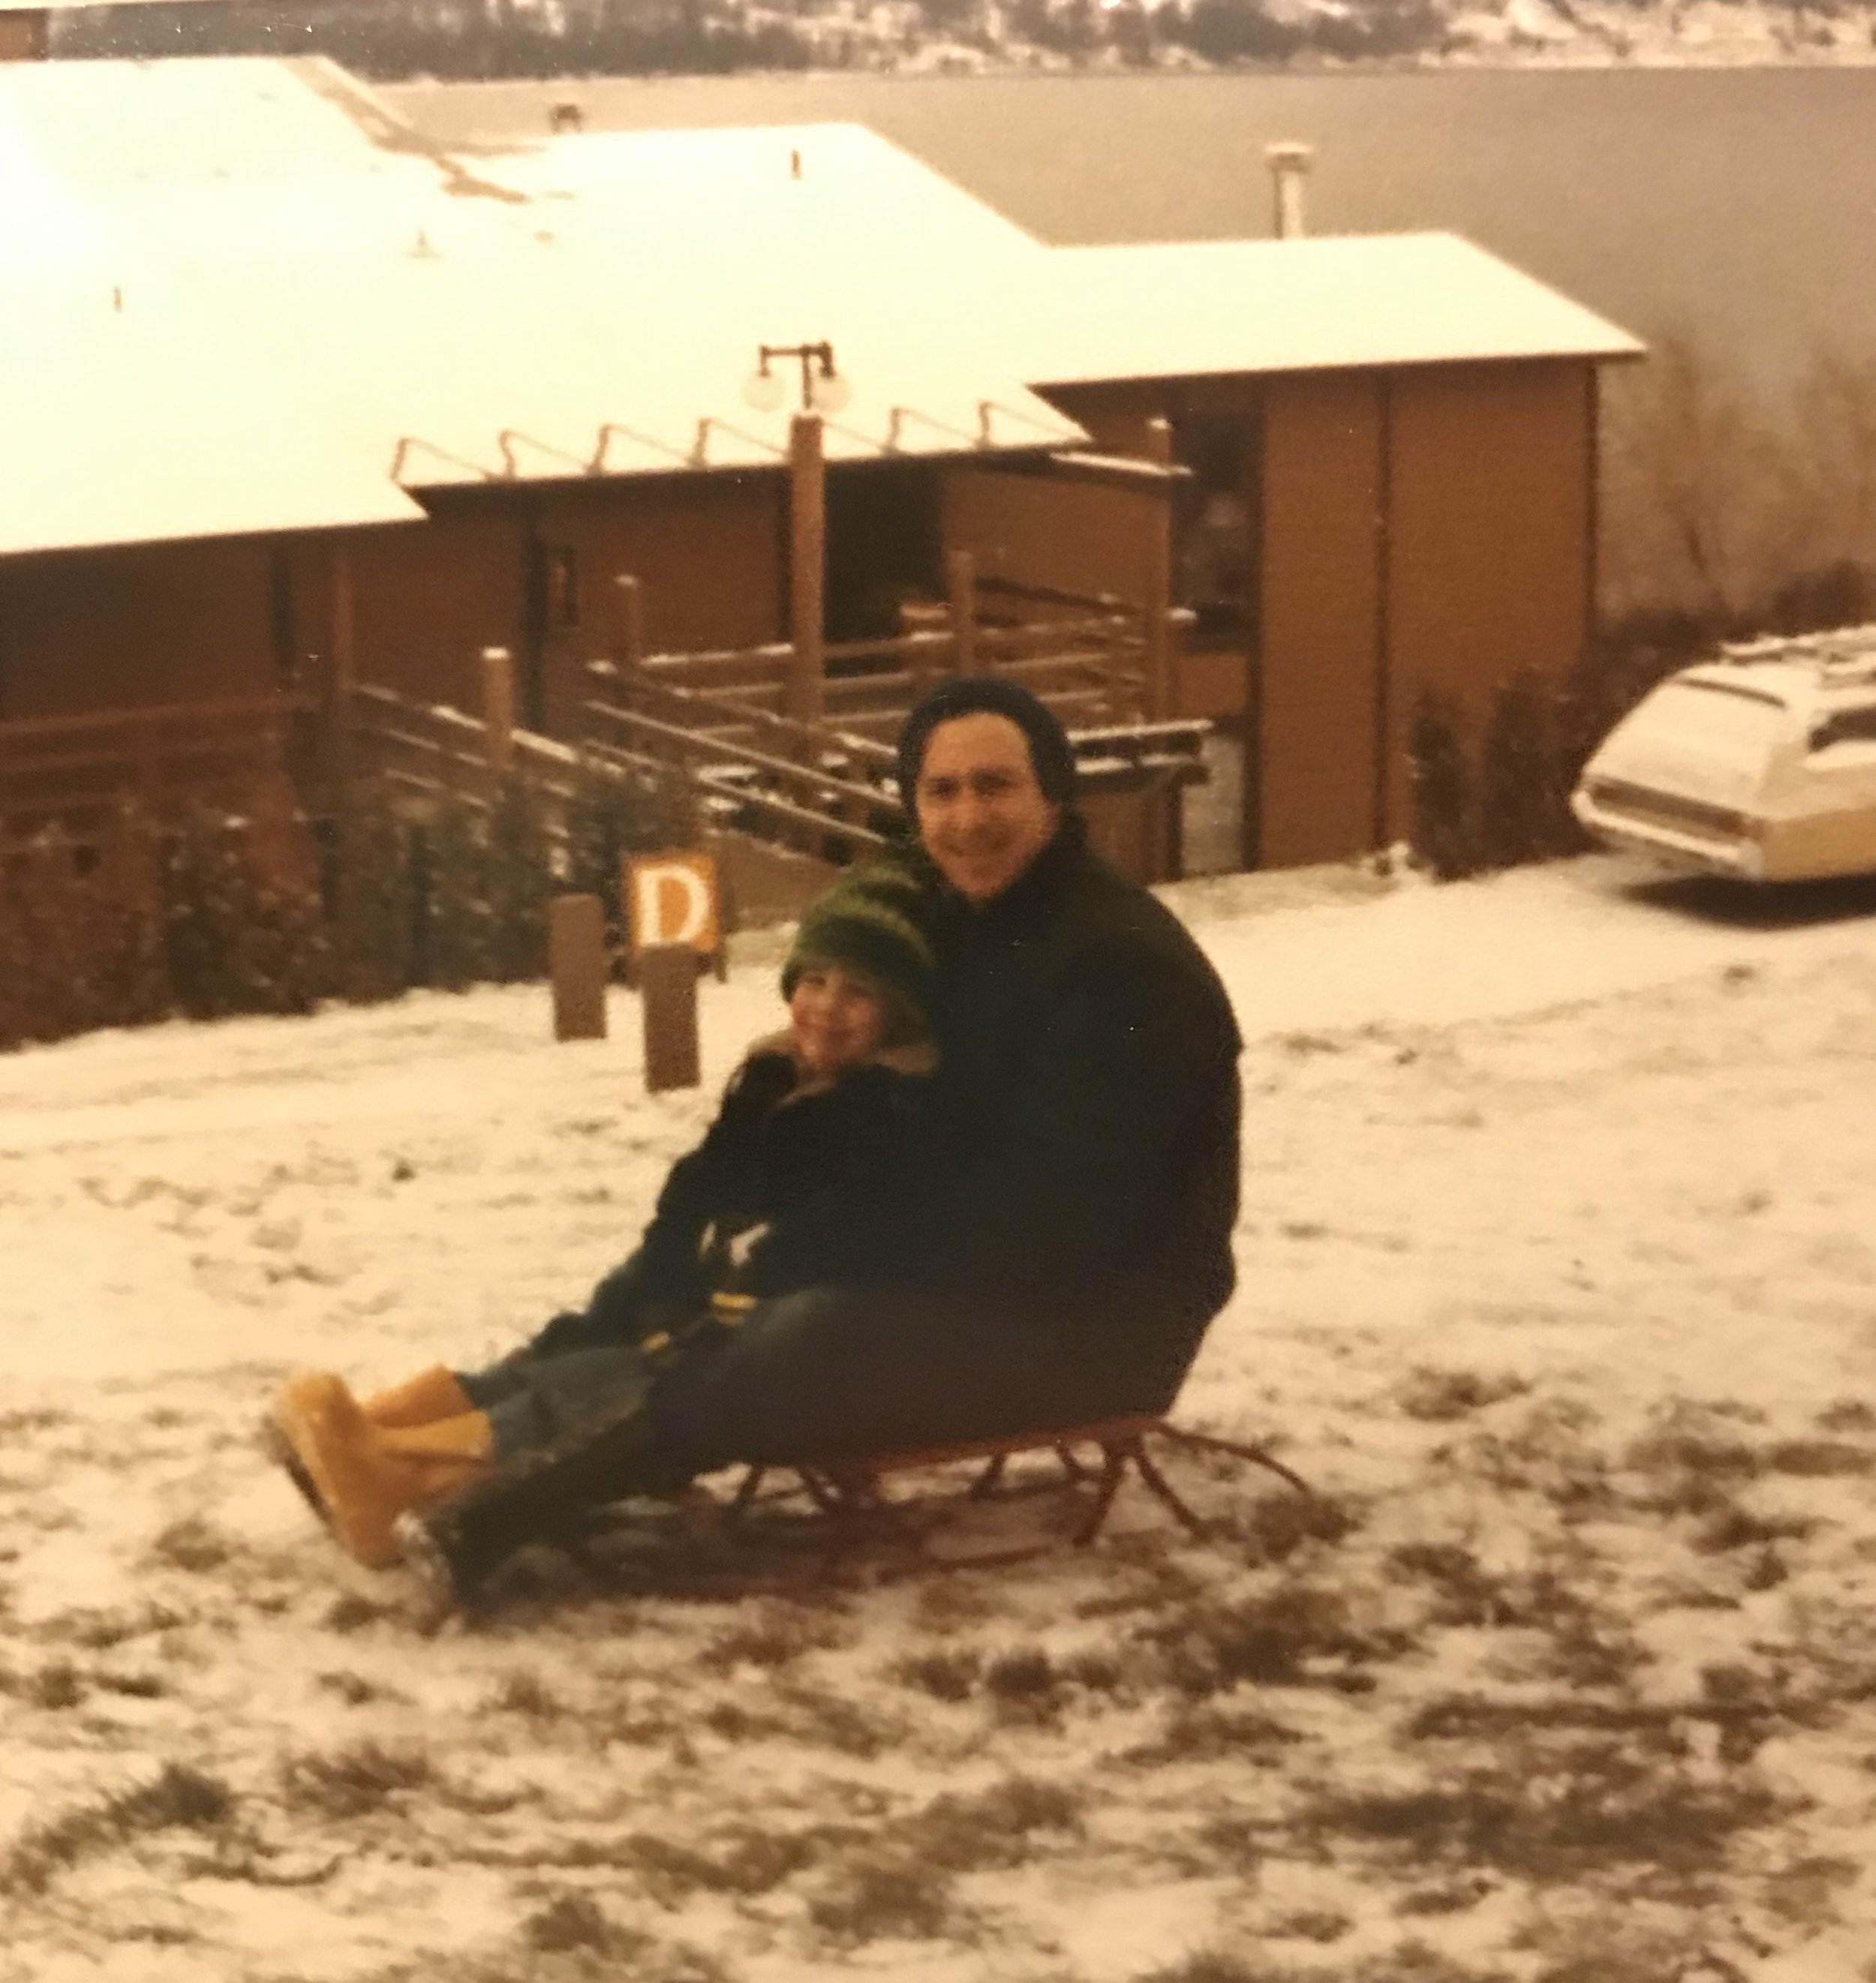 My dad and little brother at Lake Chelan in the 1970s. That was the first and last time we went in the winter due to the icy mountain roads. And yes I totally look like my dad. More so now than ever with this haircut!